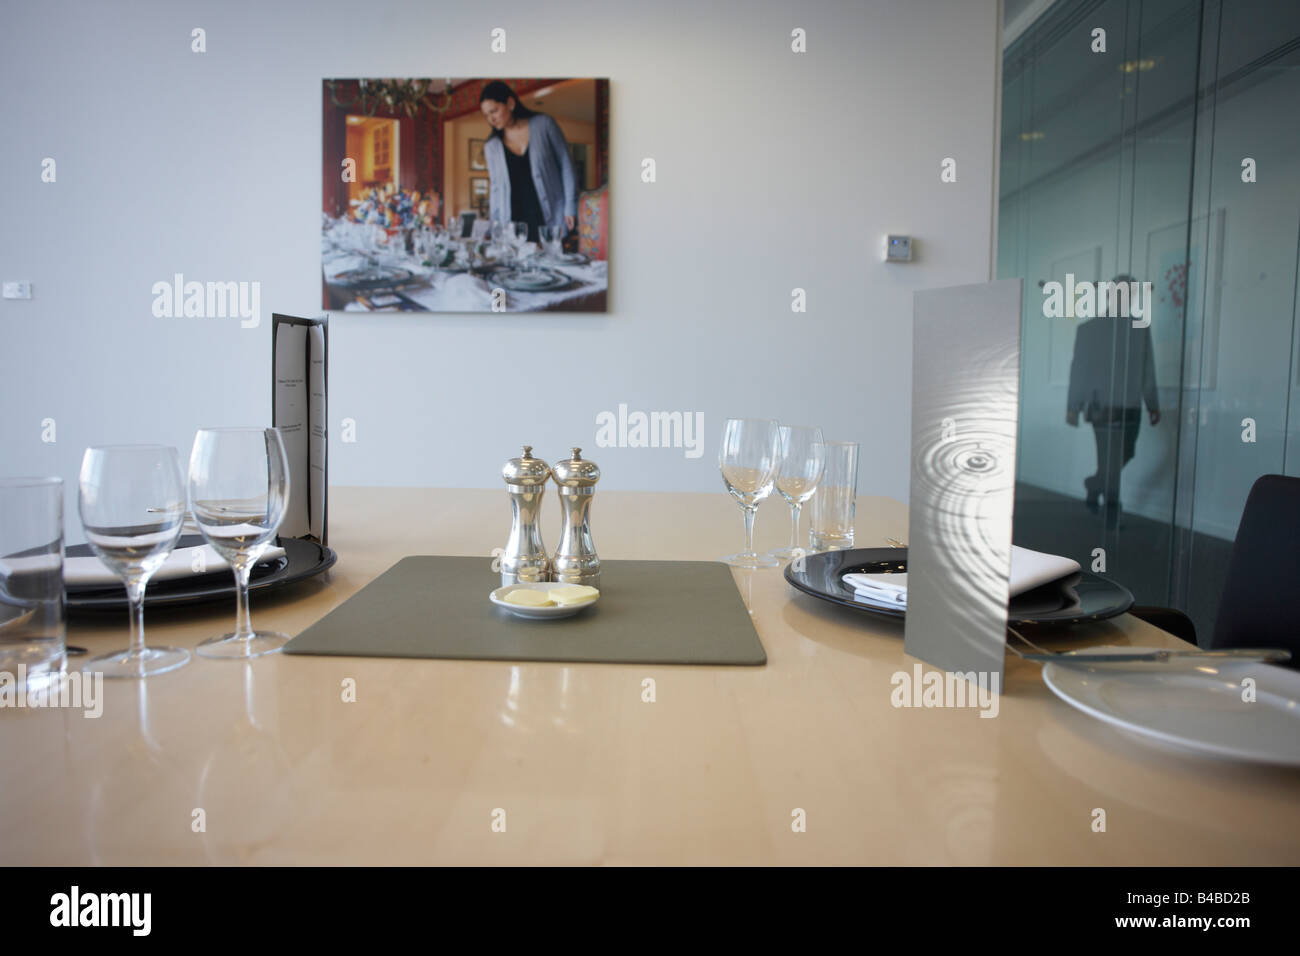 Top floor restaurant prepared for executive lunch meetings in an auditing company's London headquarters - Stock Image